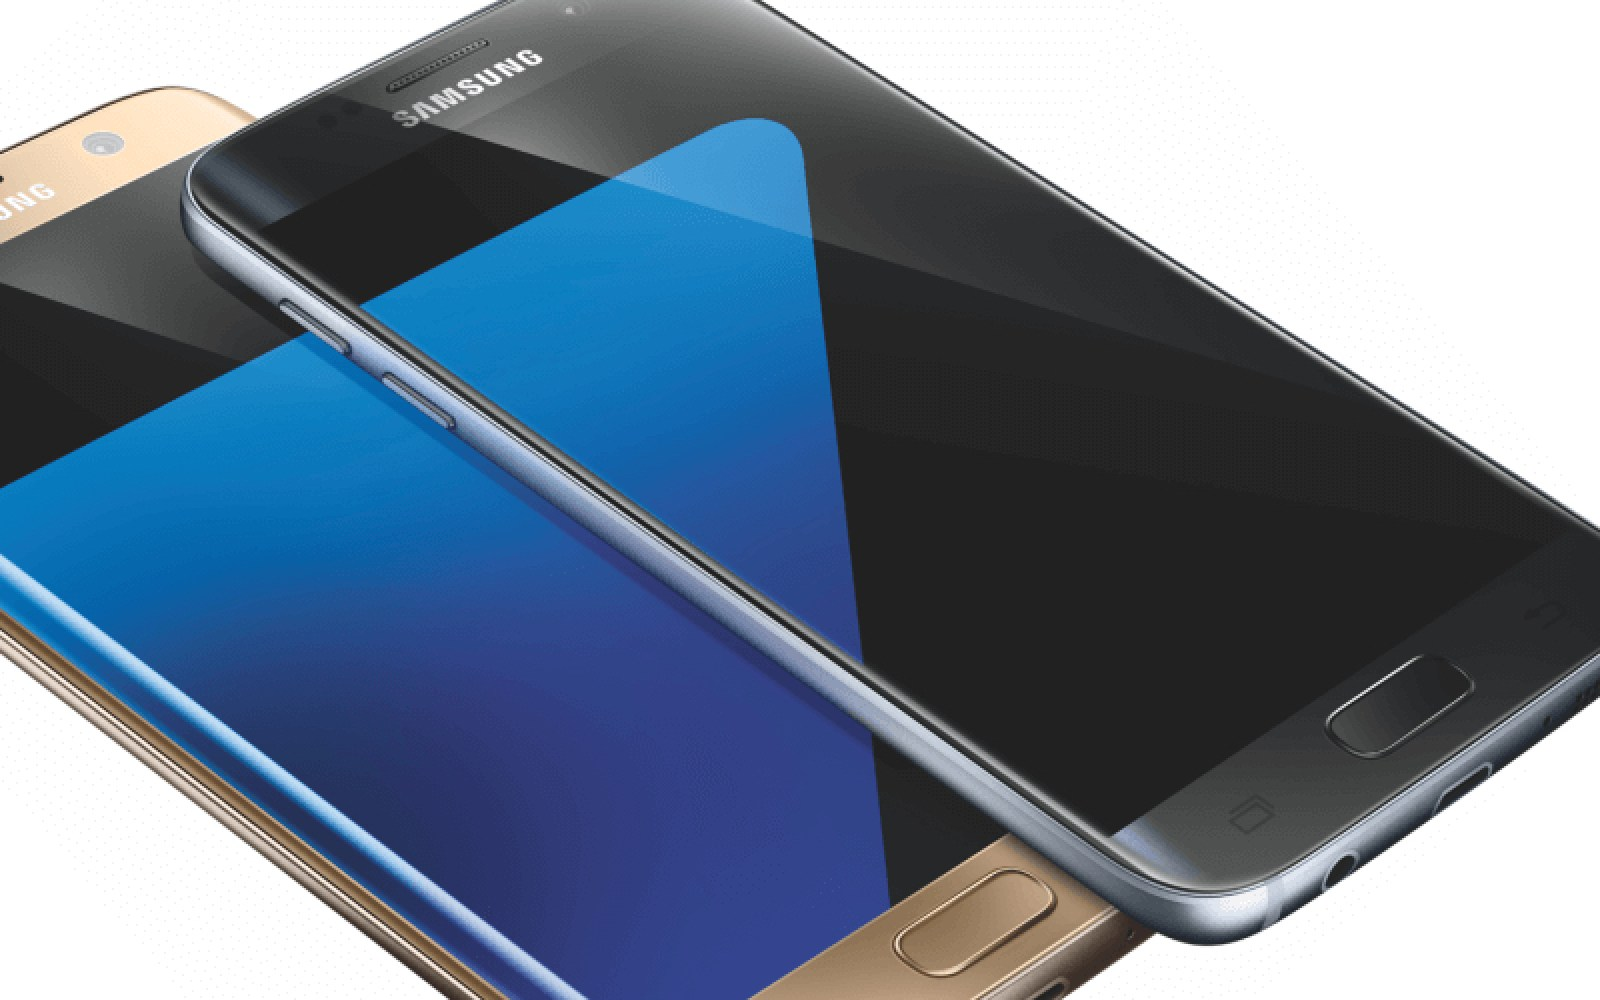 Galaxy S7 pre-orders rumored to open on Feb. 21, free Gear VR for early shoppers